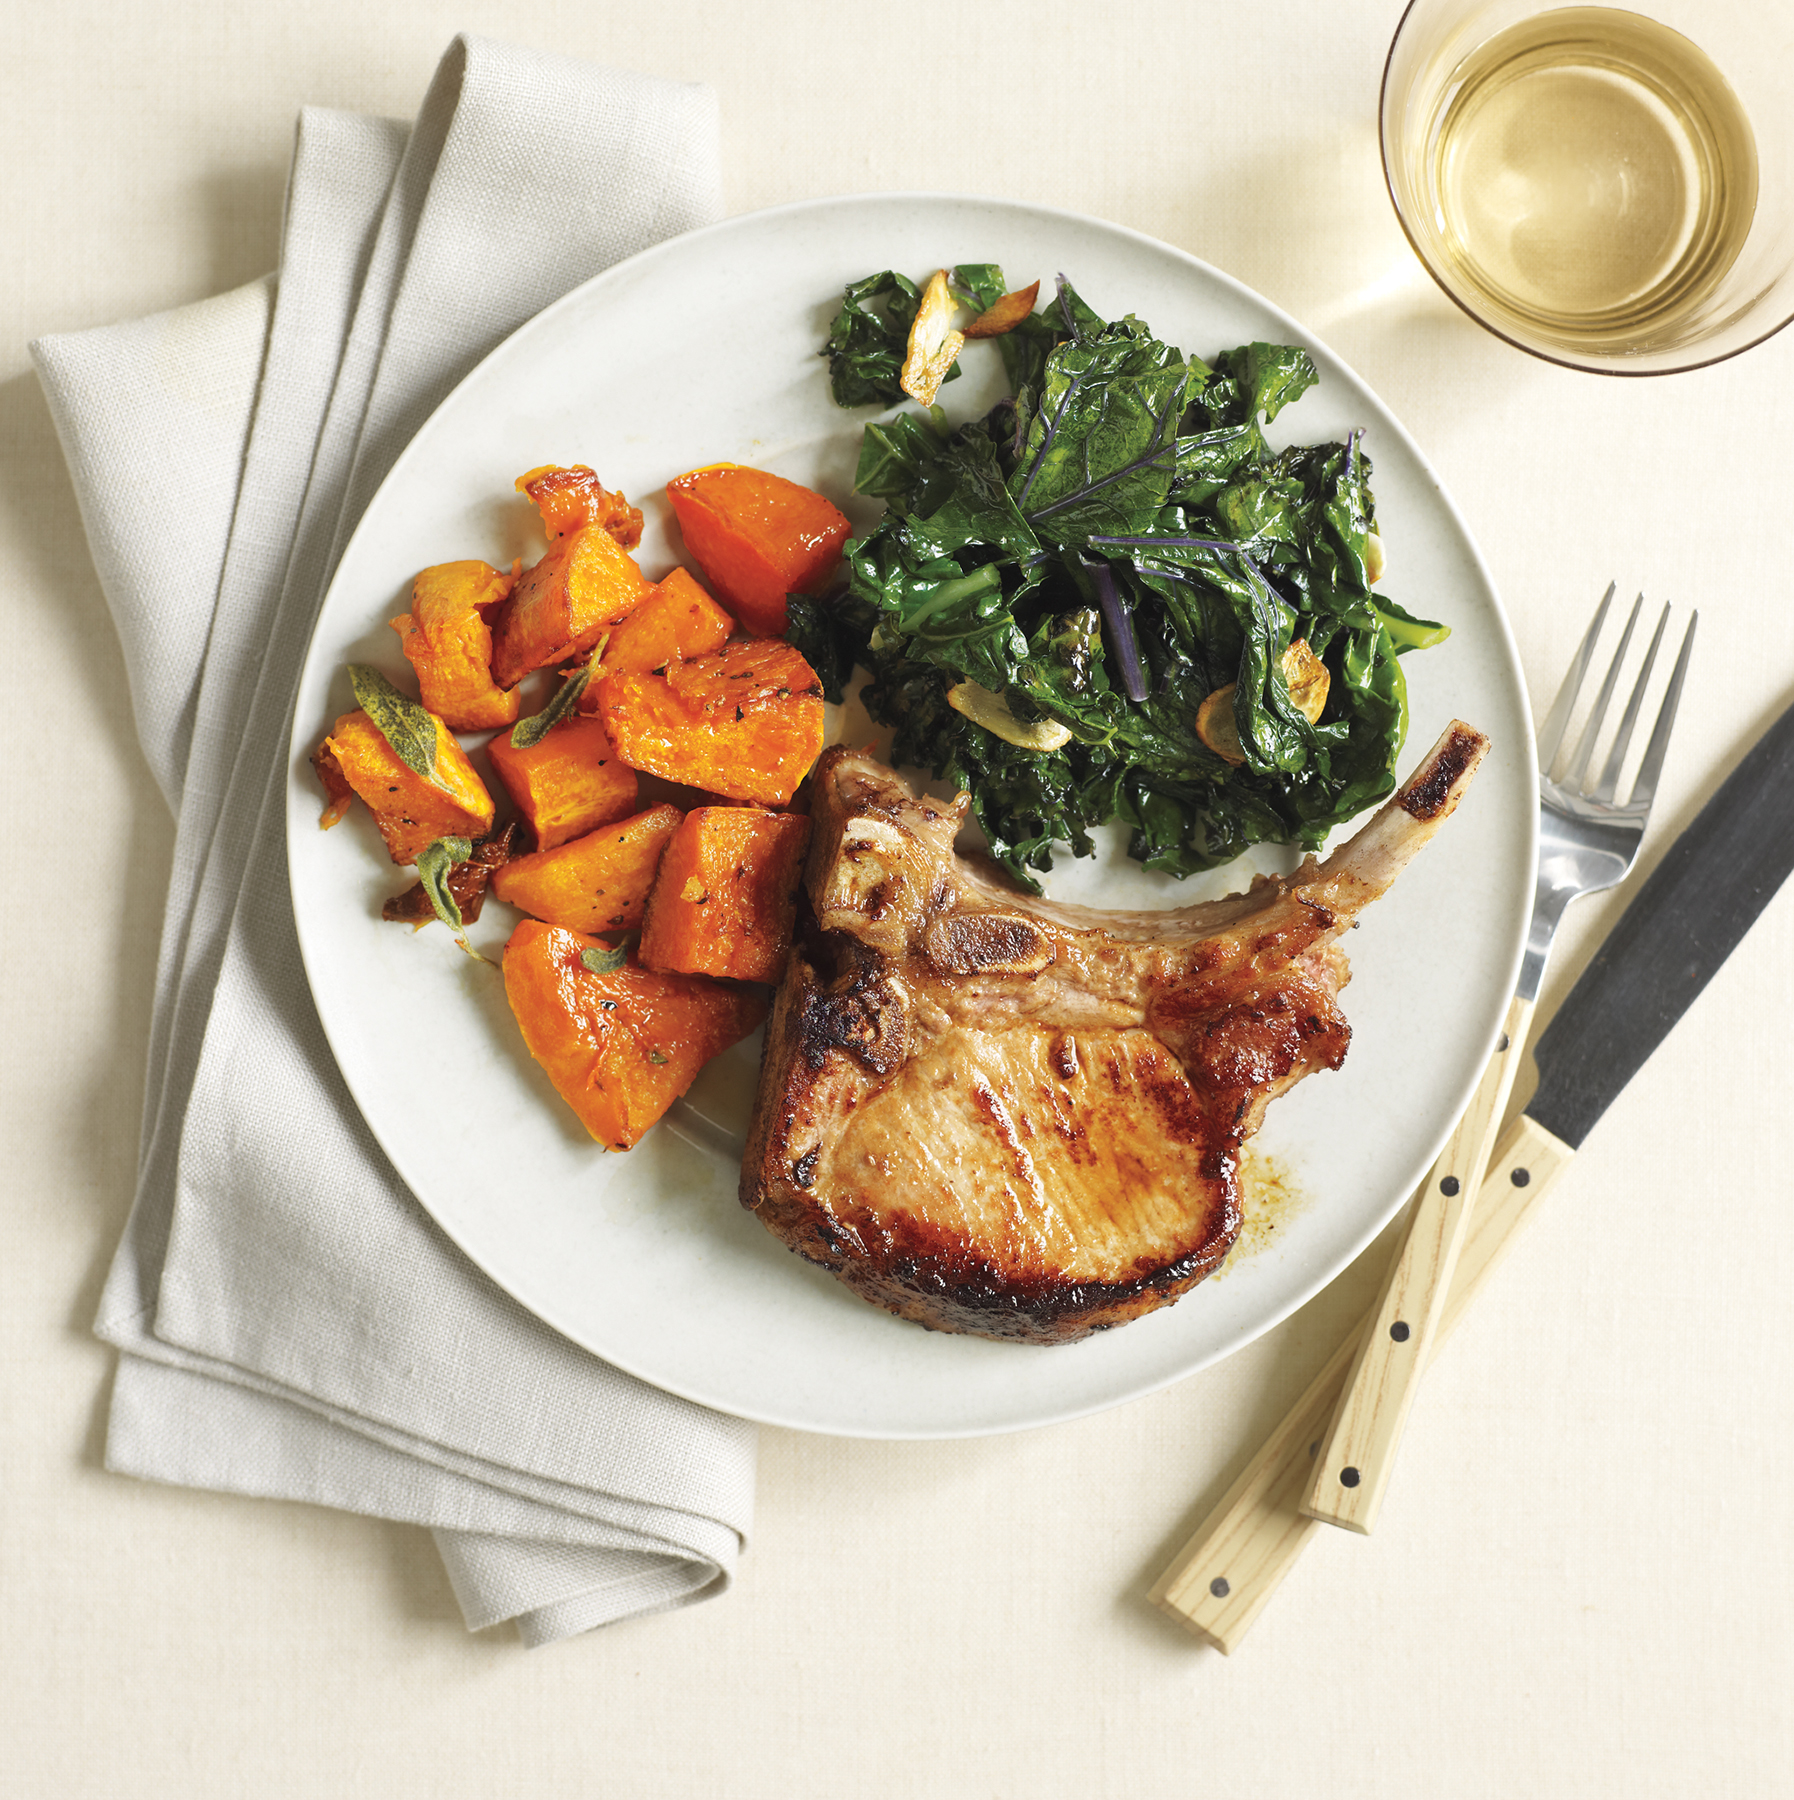 Roasted Pork Chops and Butternut Squash With Kale, one of our healthy dinner recipes.